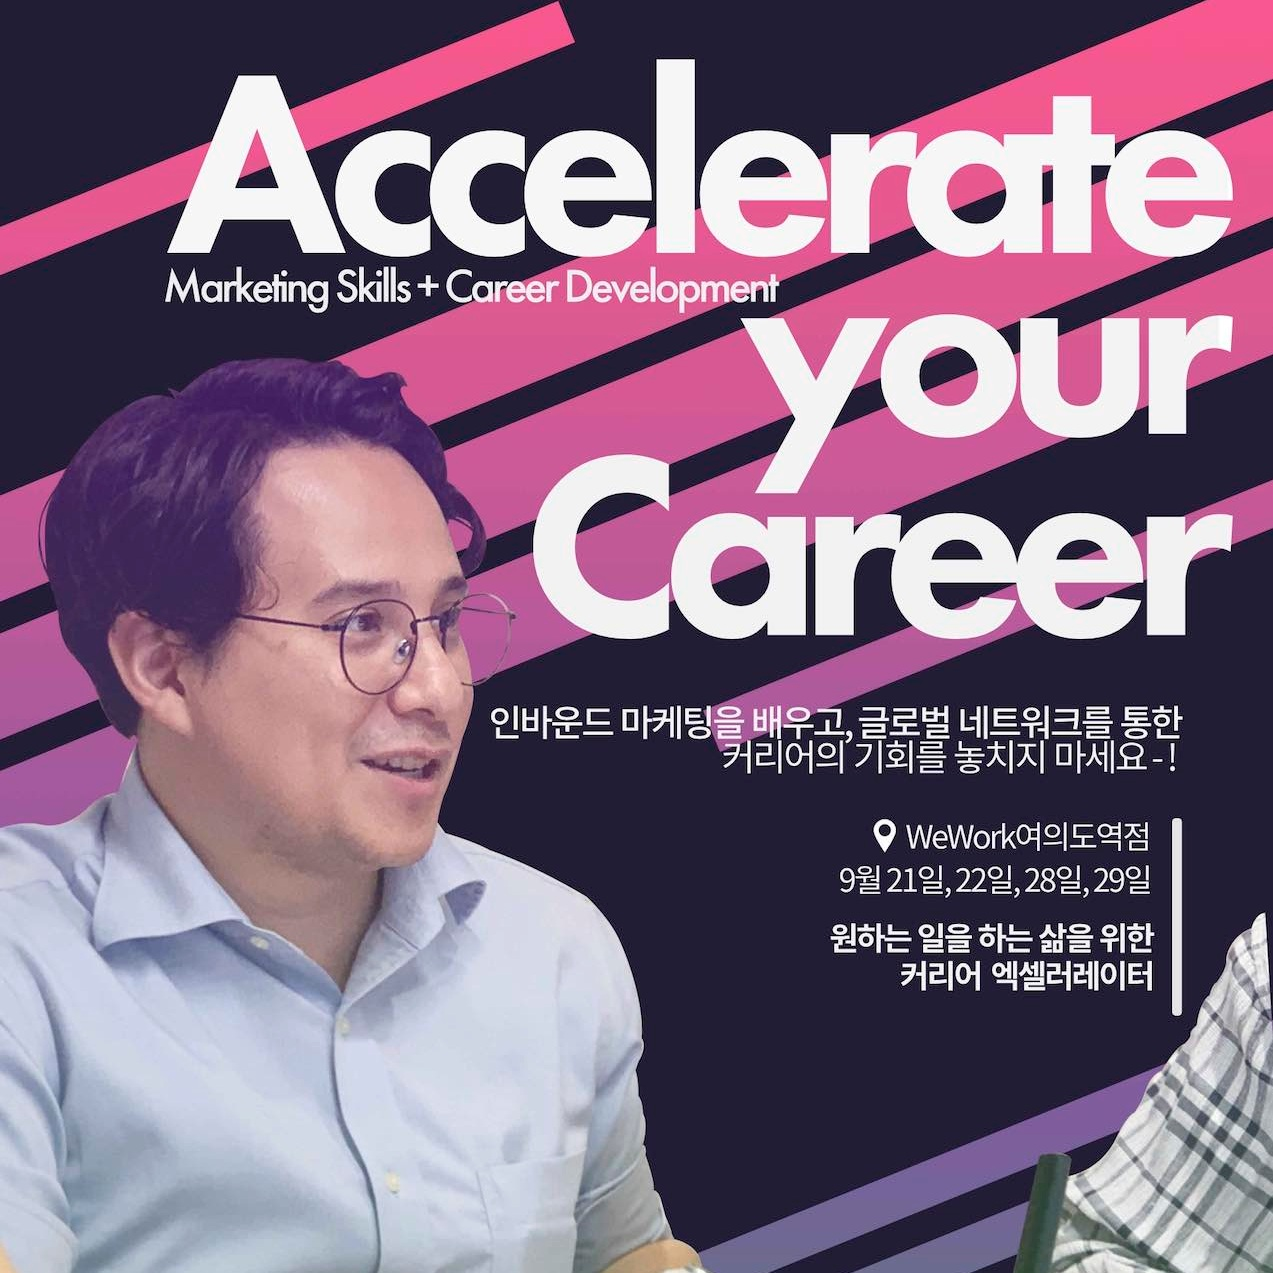 career_accelerate_A3_poster2.jpg